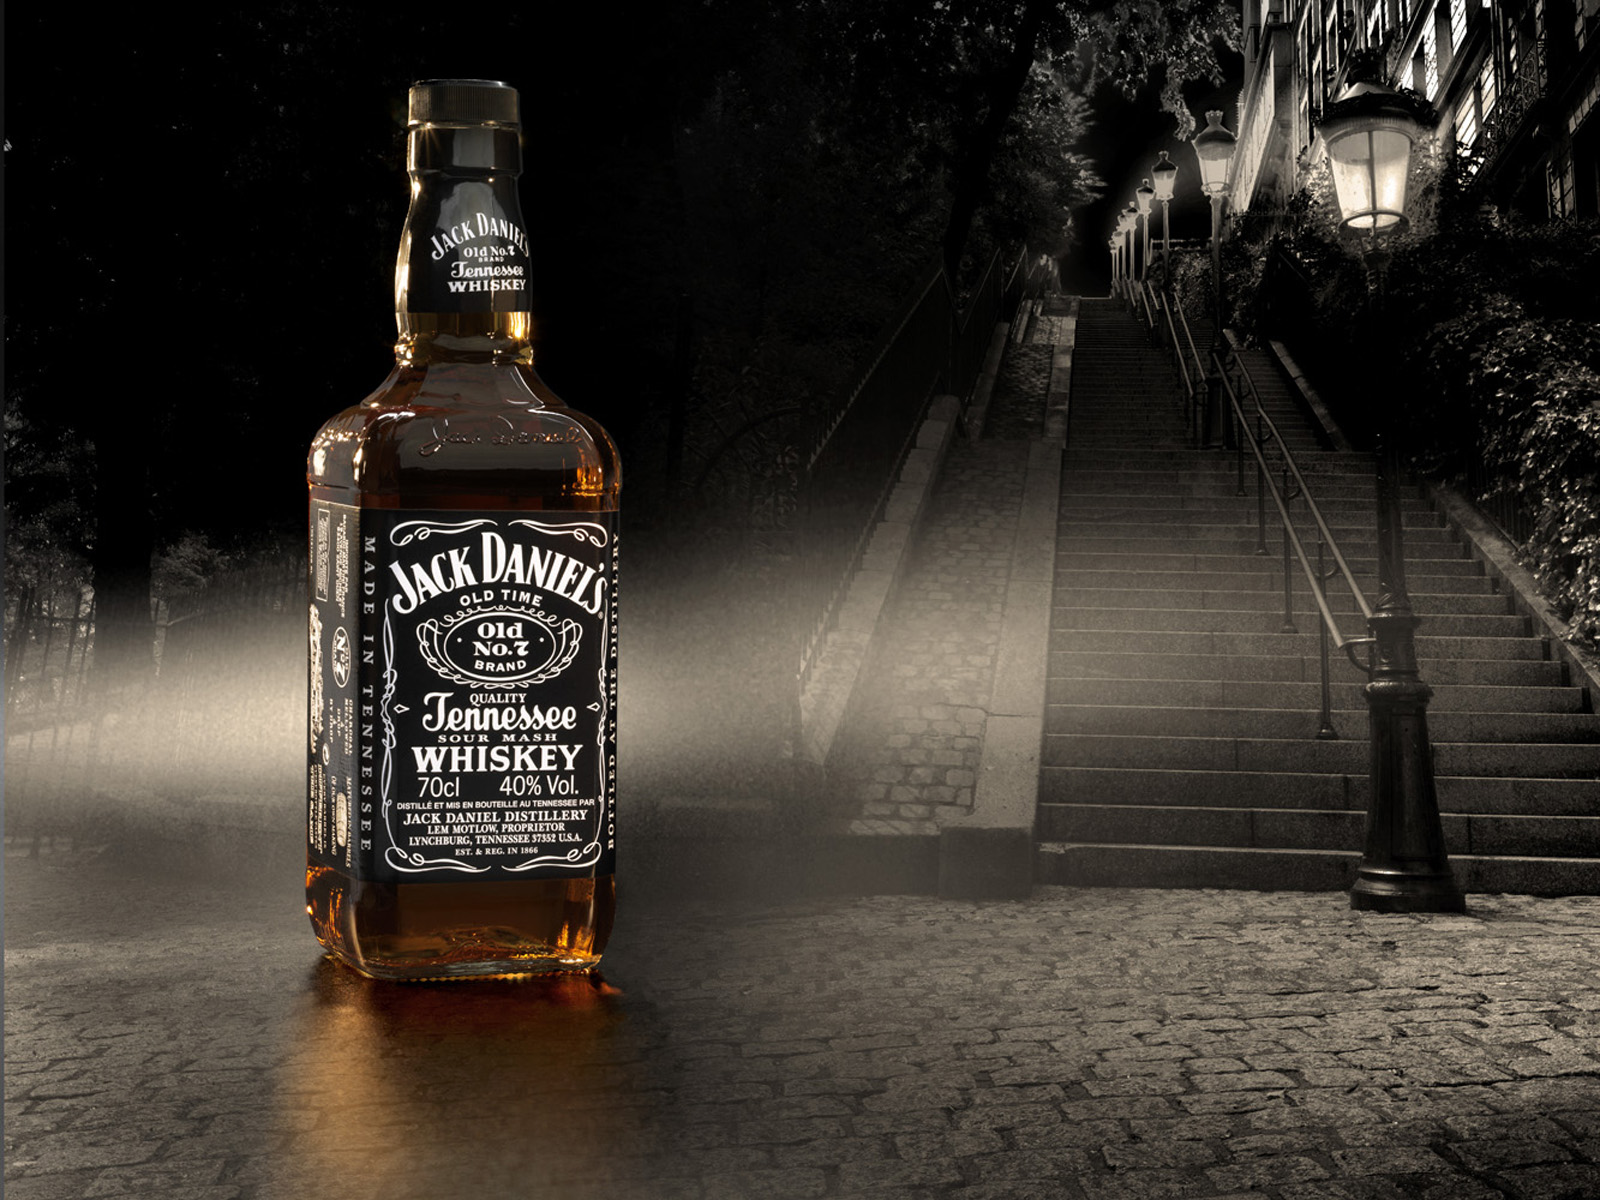 whisky 1080p wallpapers hd - photo #30